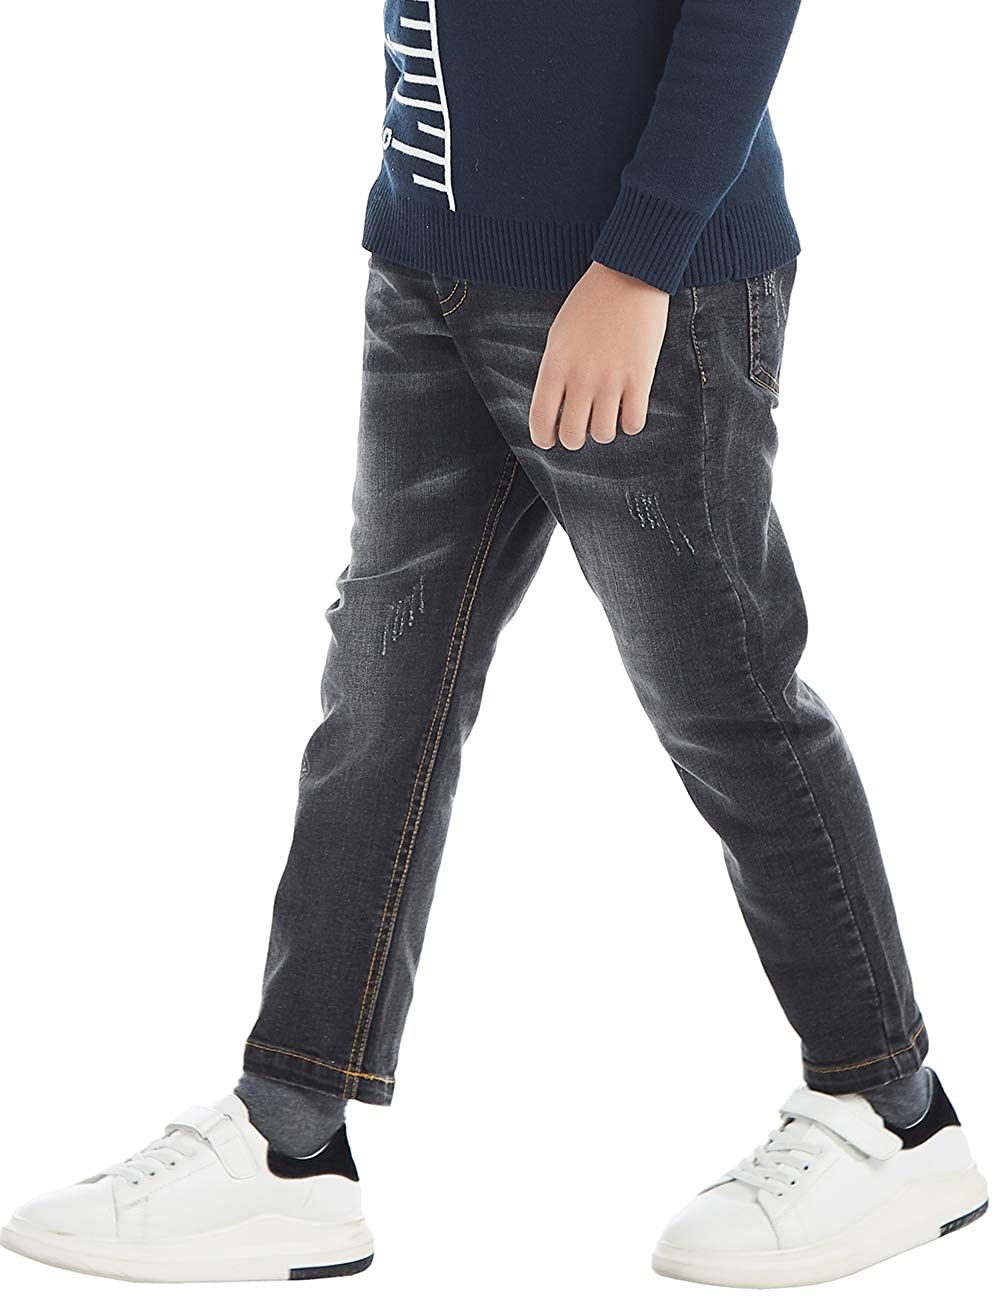 BYCR Boys/' Skinny Elastic Waist Denim Jeans Pull On Pants for Kids Age 4-16 Years